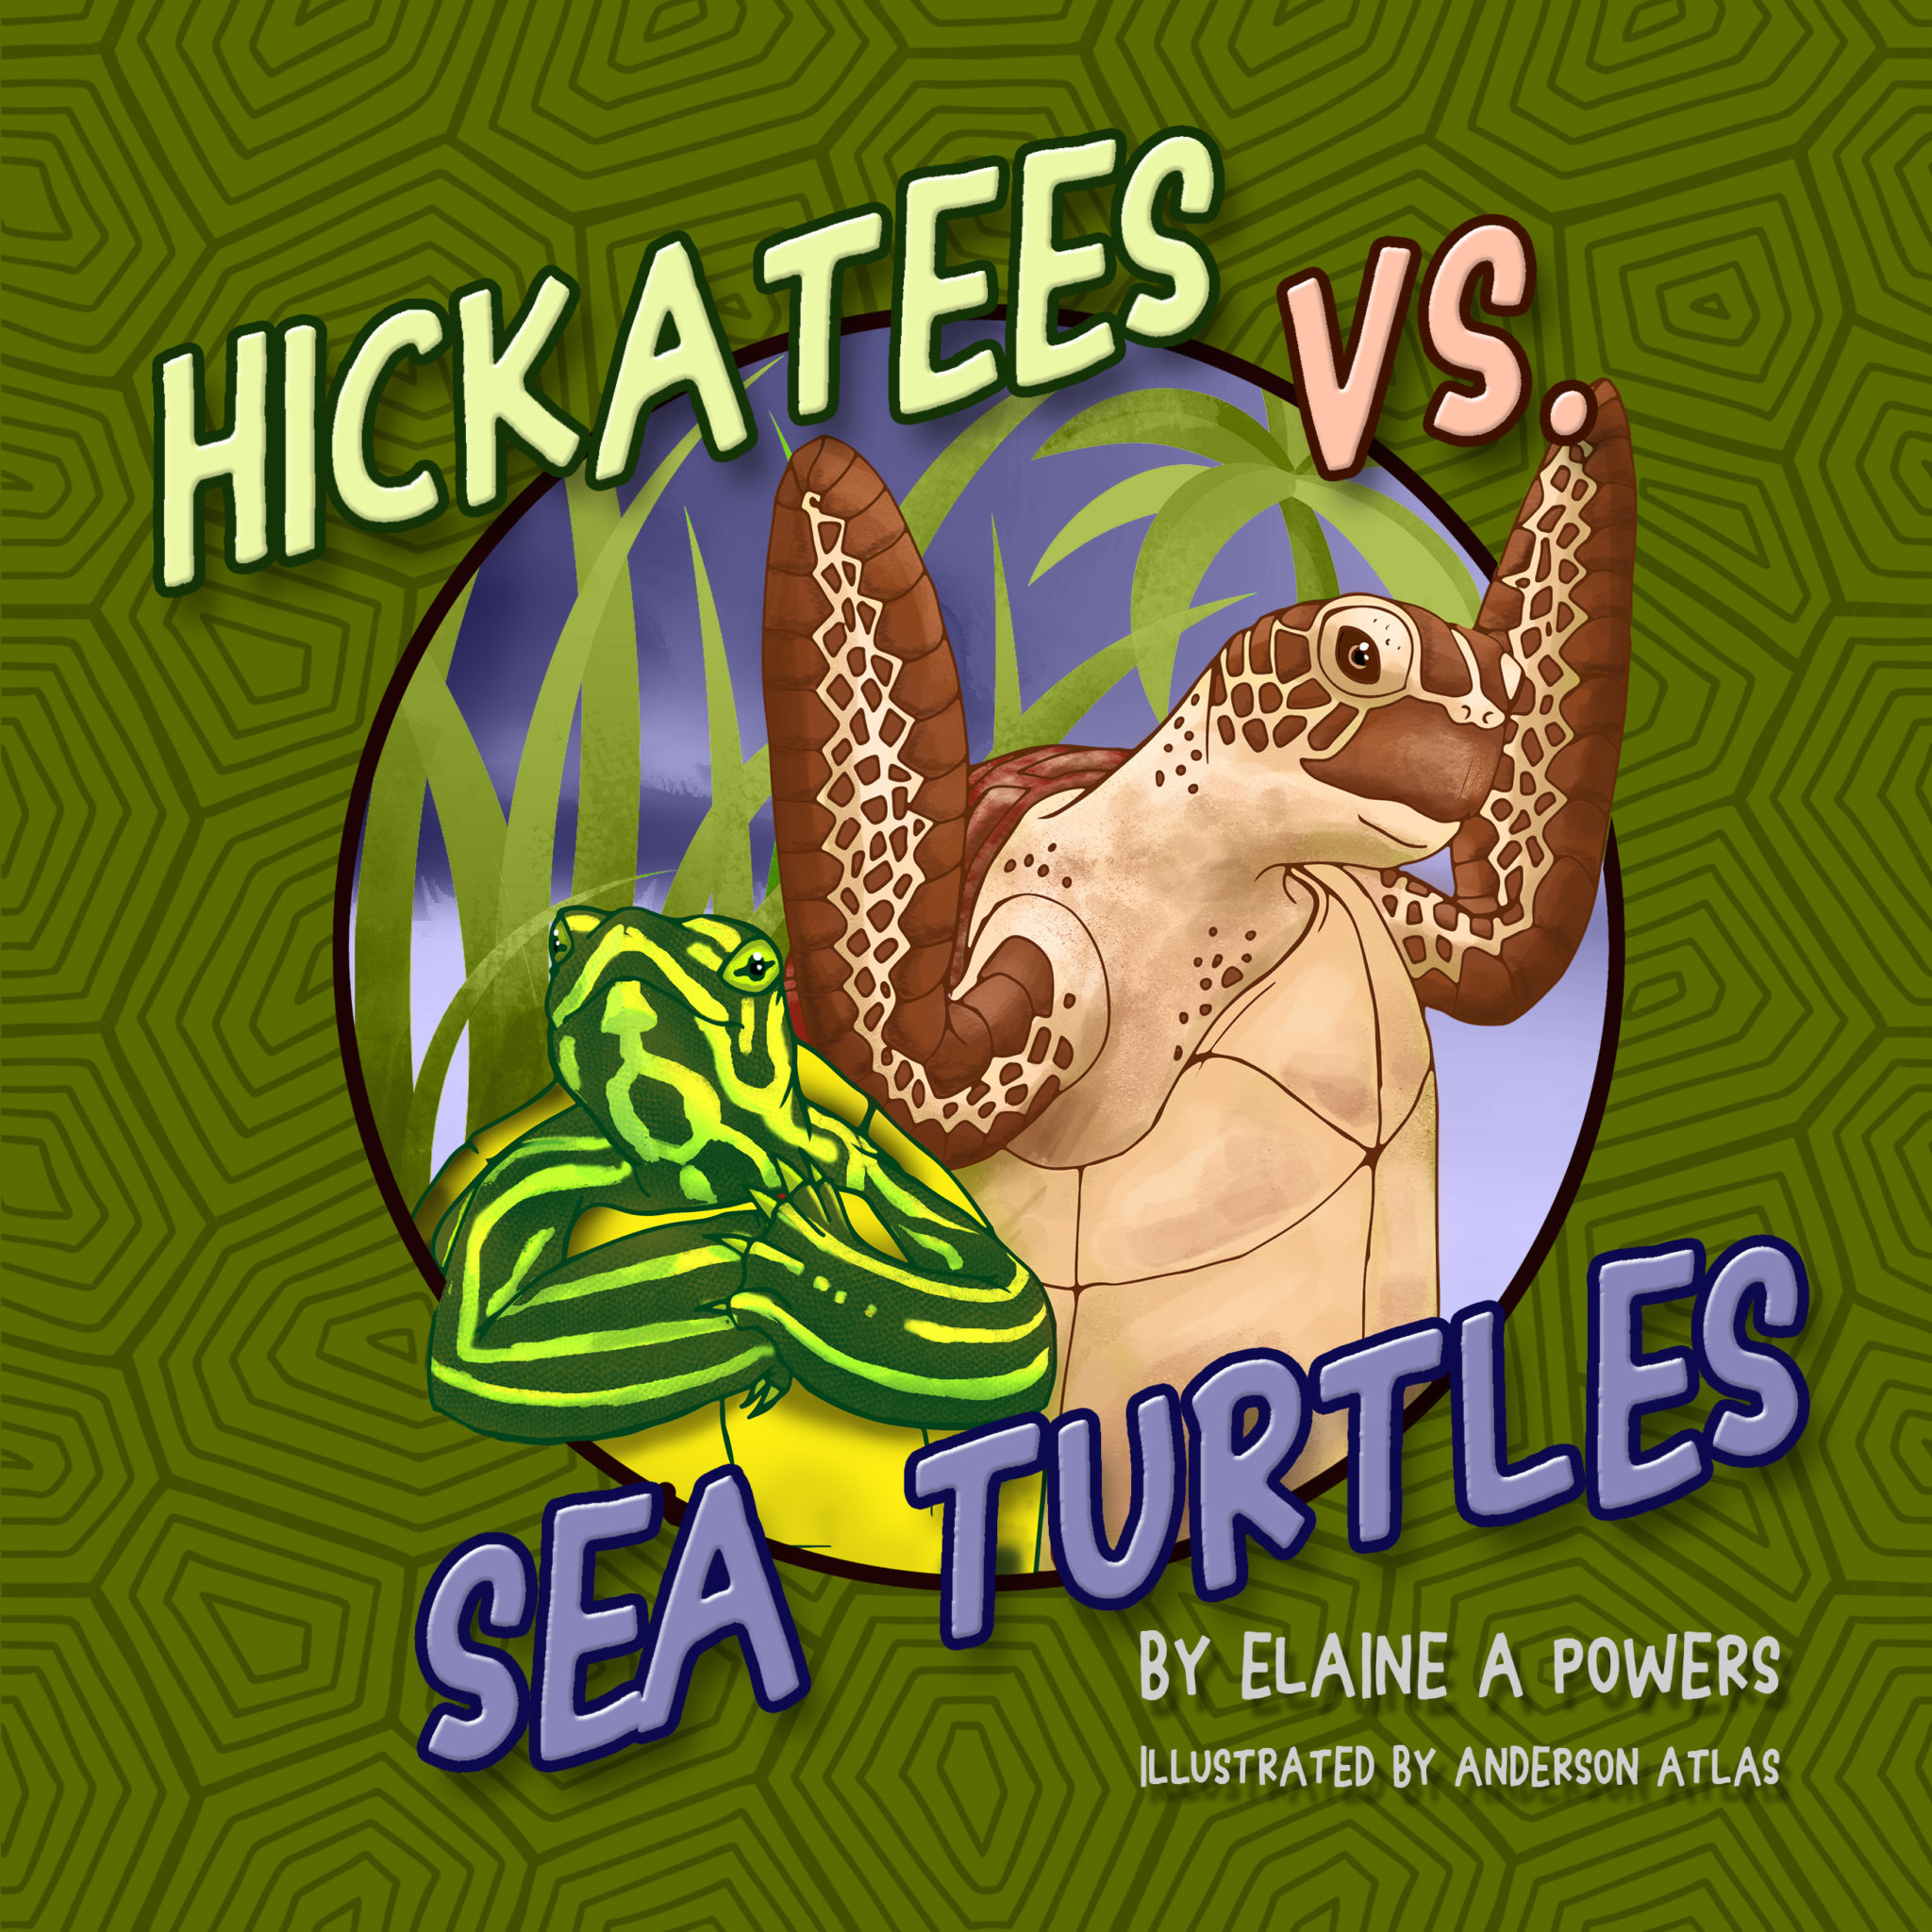 a green book cover with illustrations of a hickatee and a sea turtle